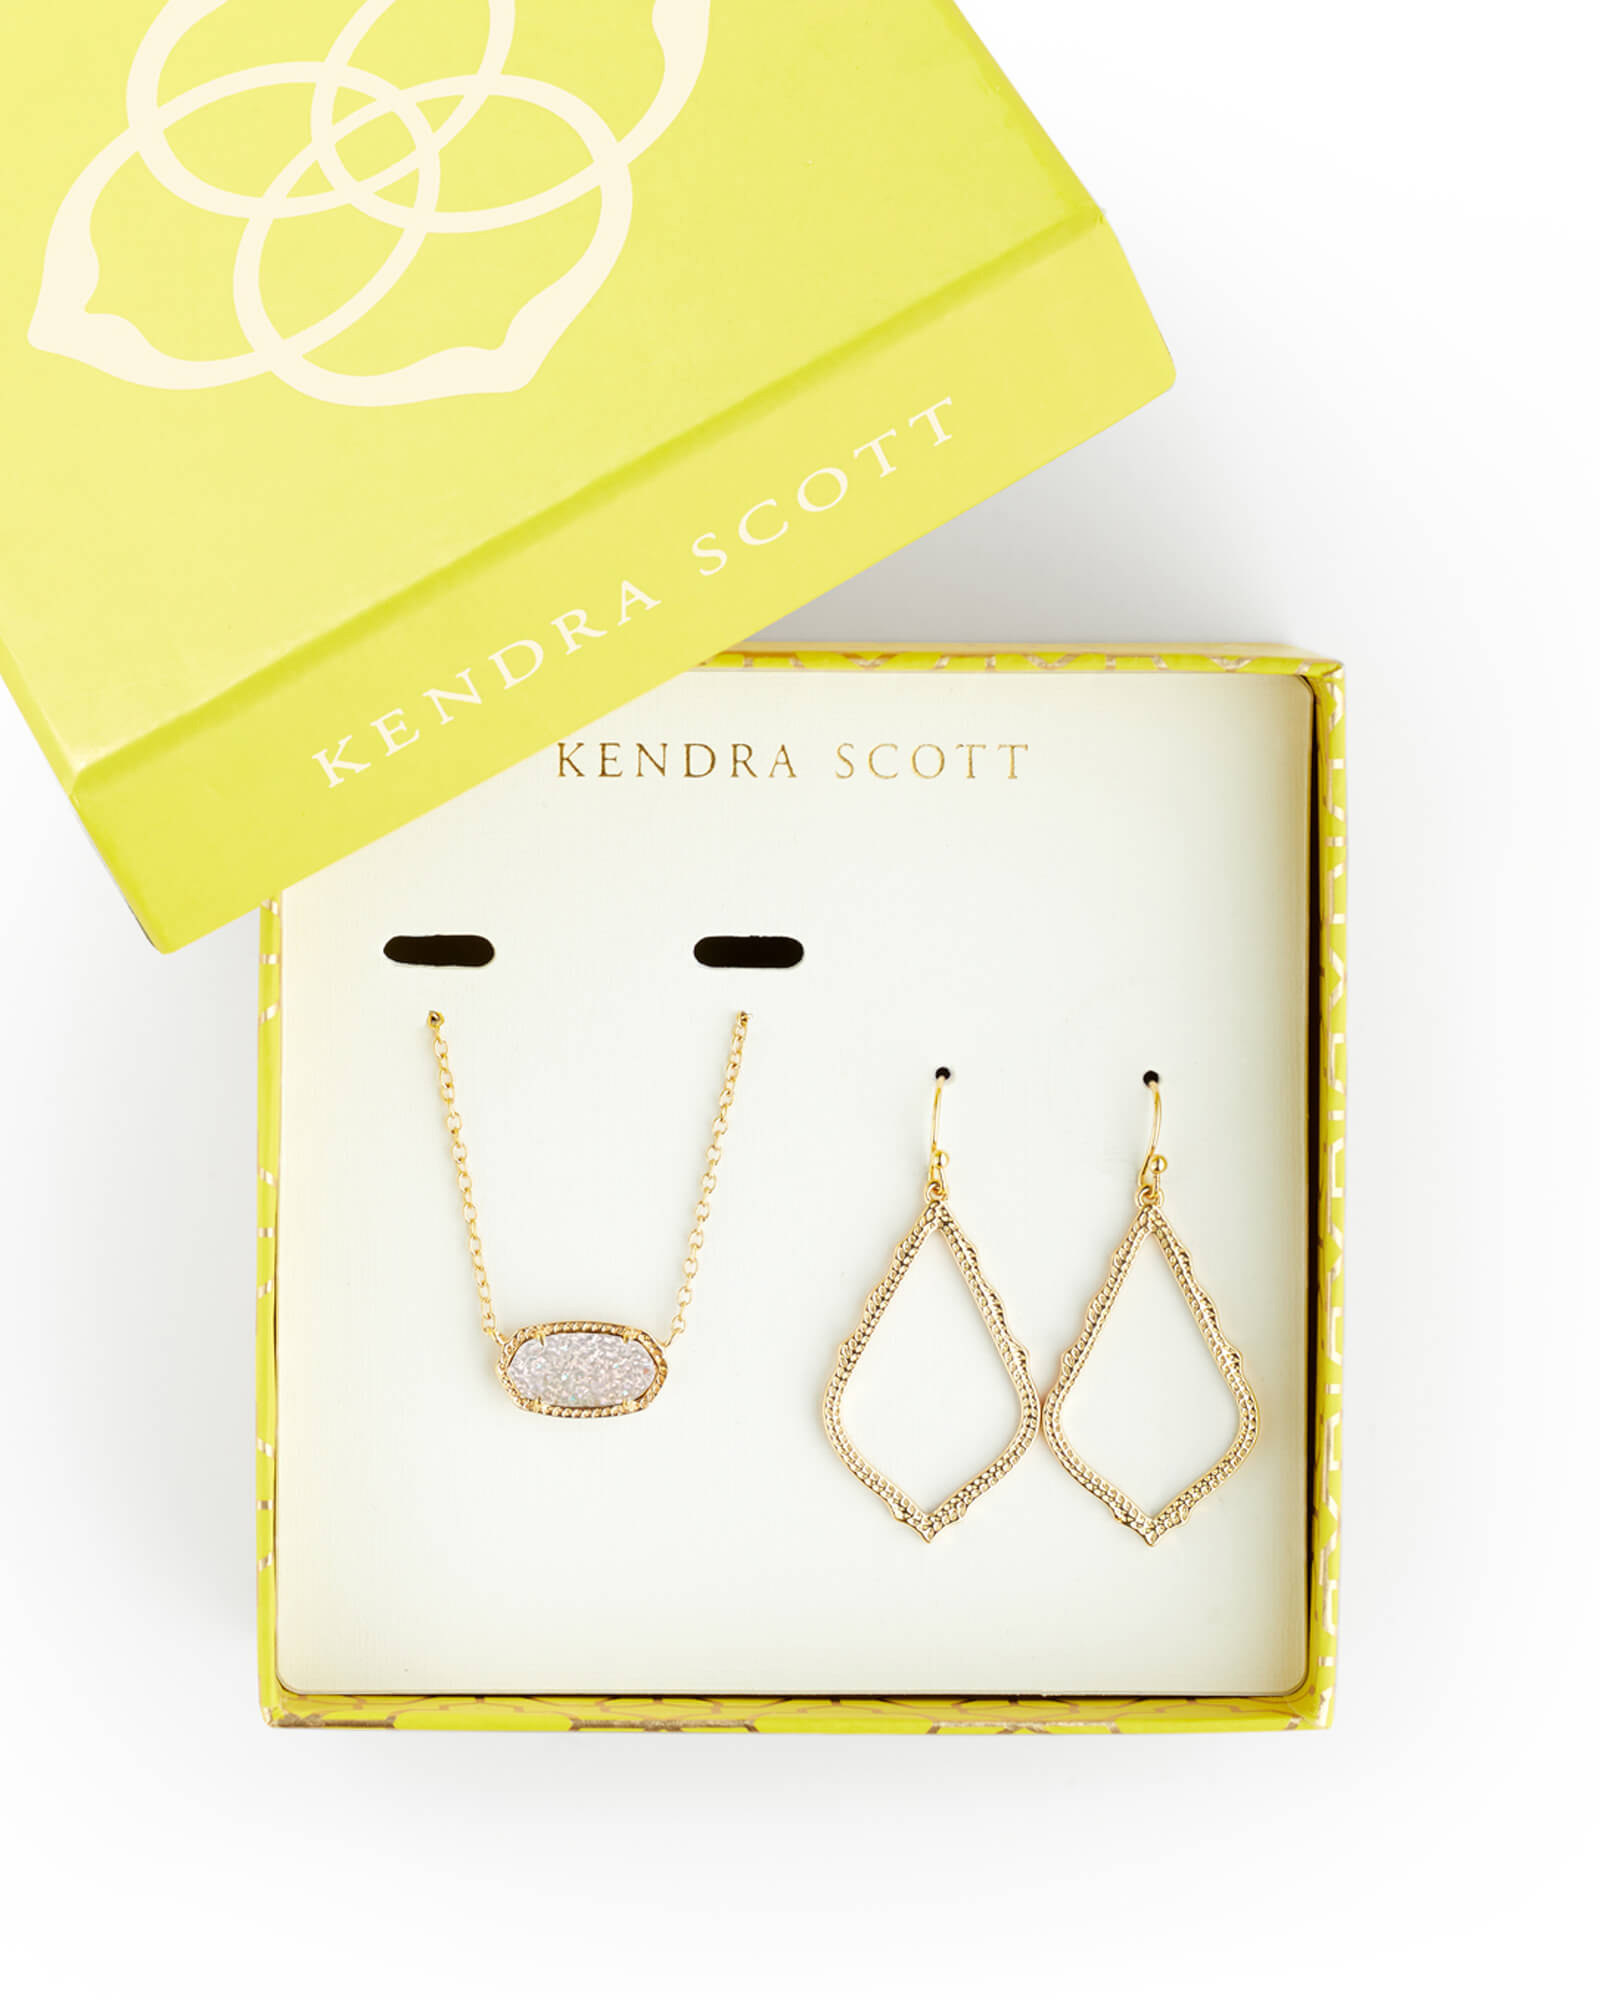 Kendra Scott Gifts Set